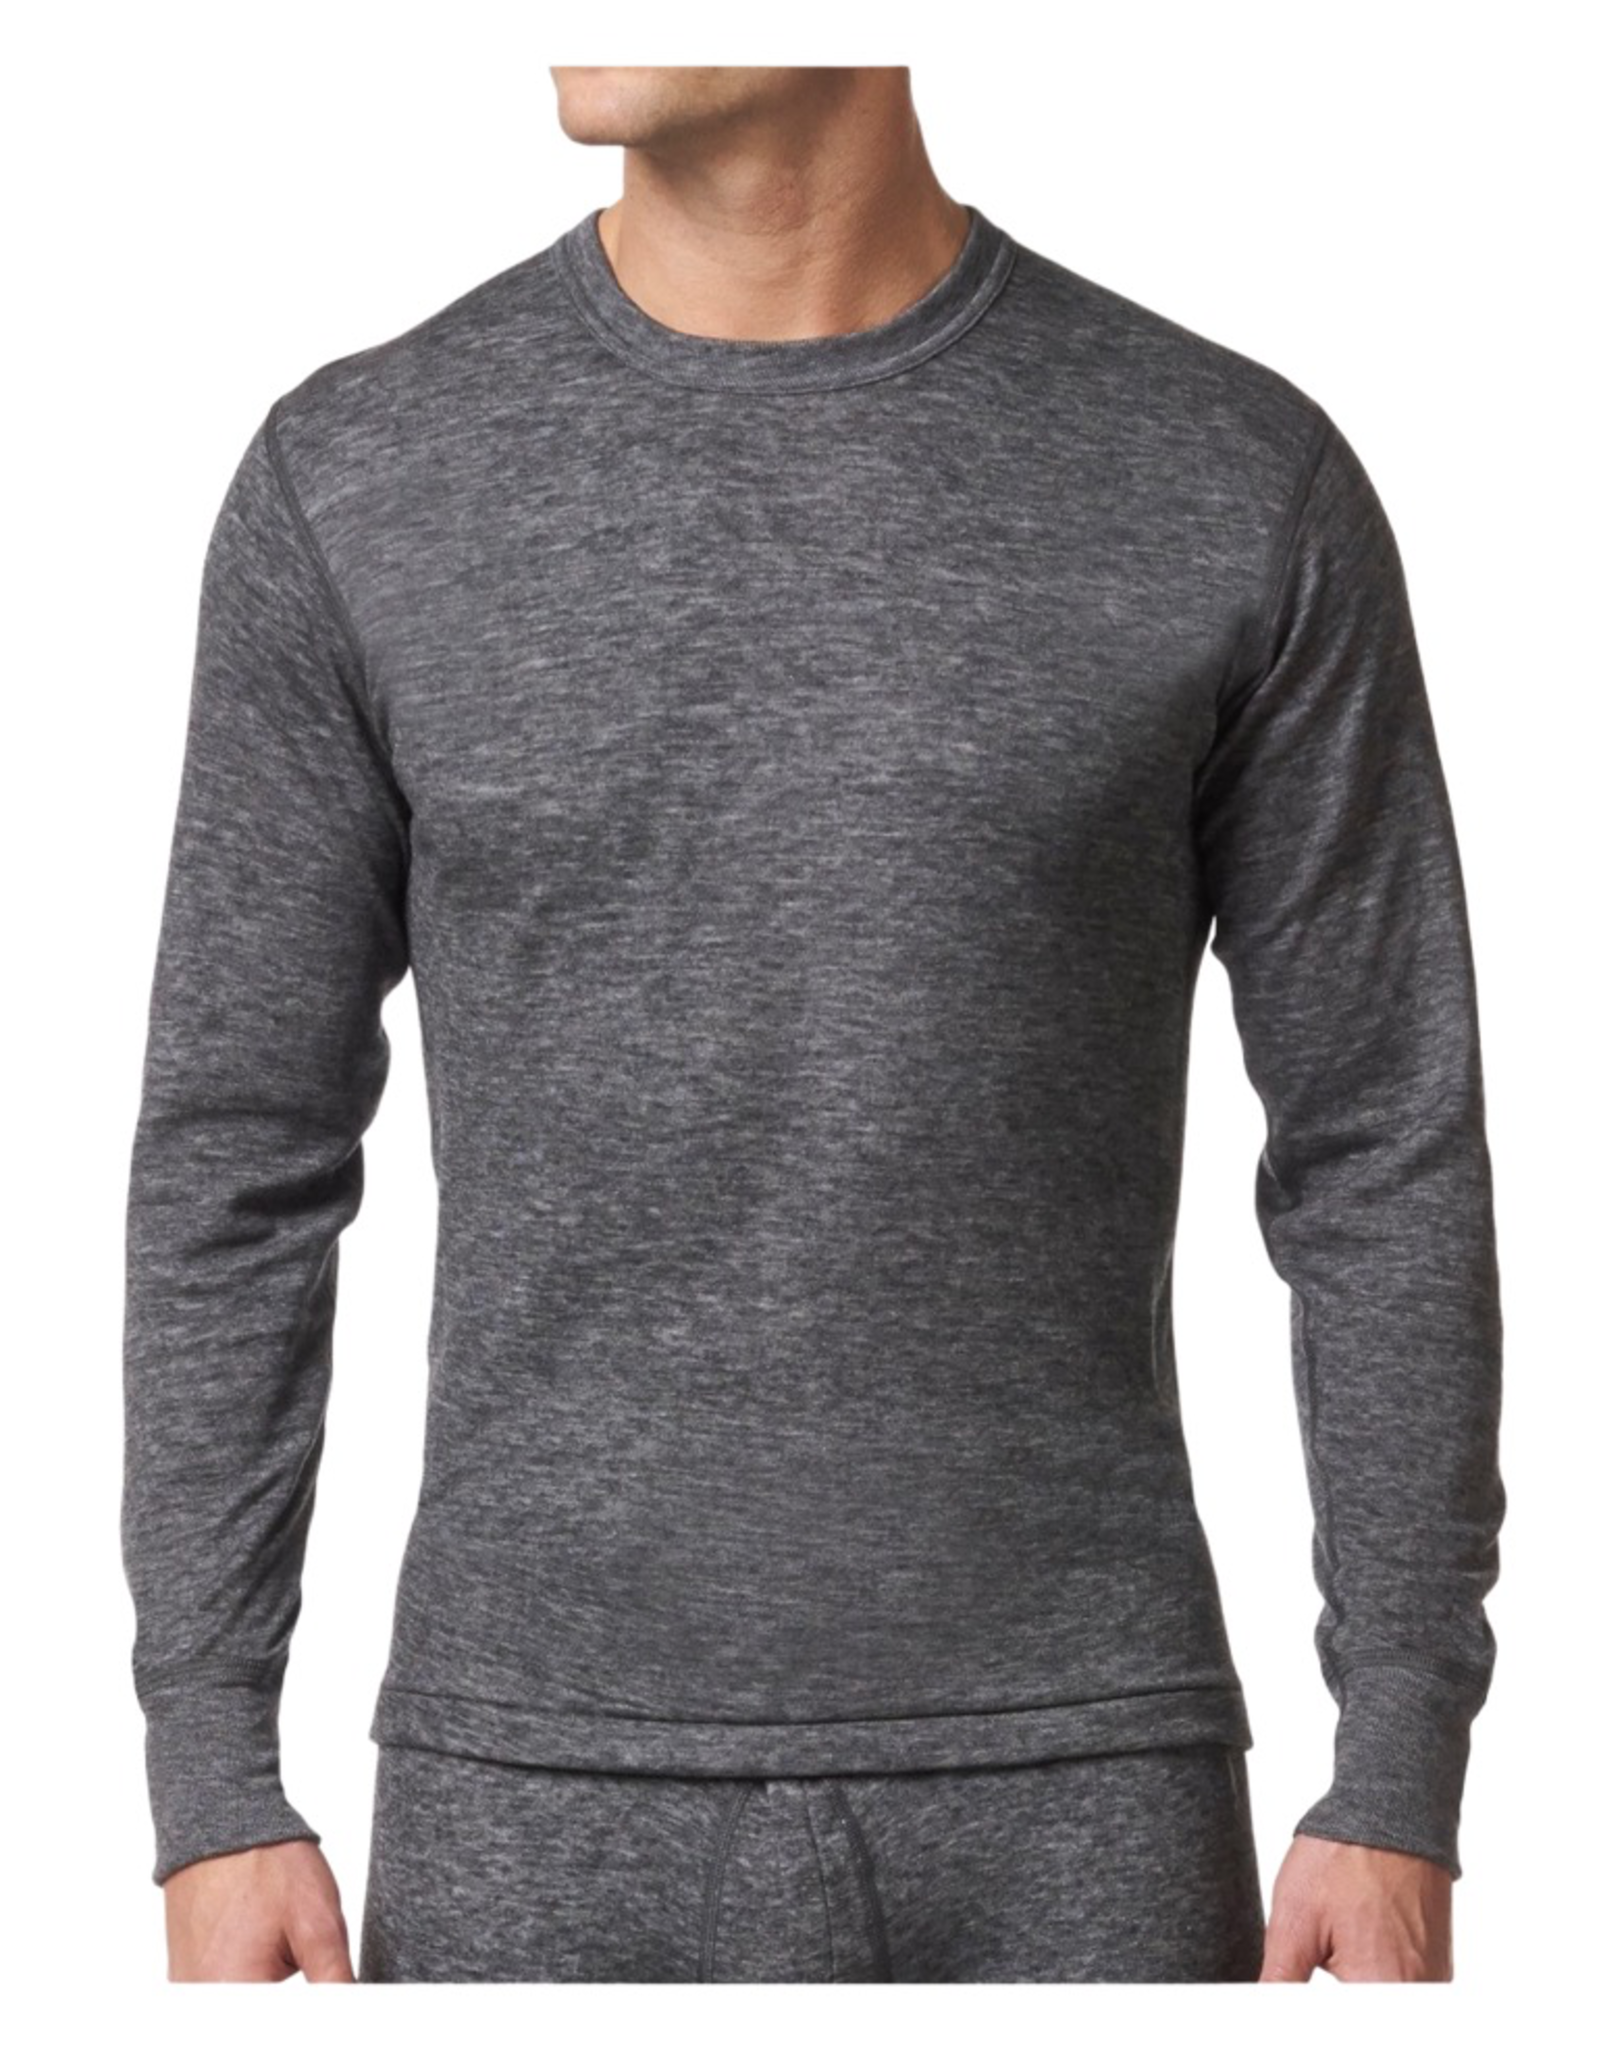 Stanfield's Stanfield's Men's Two Layer Wool Blend Base Layer Top